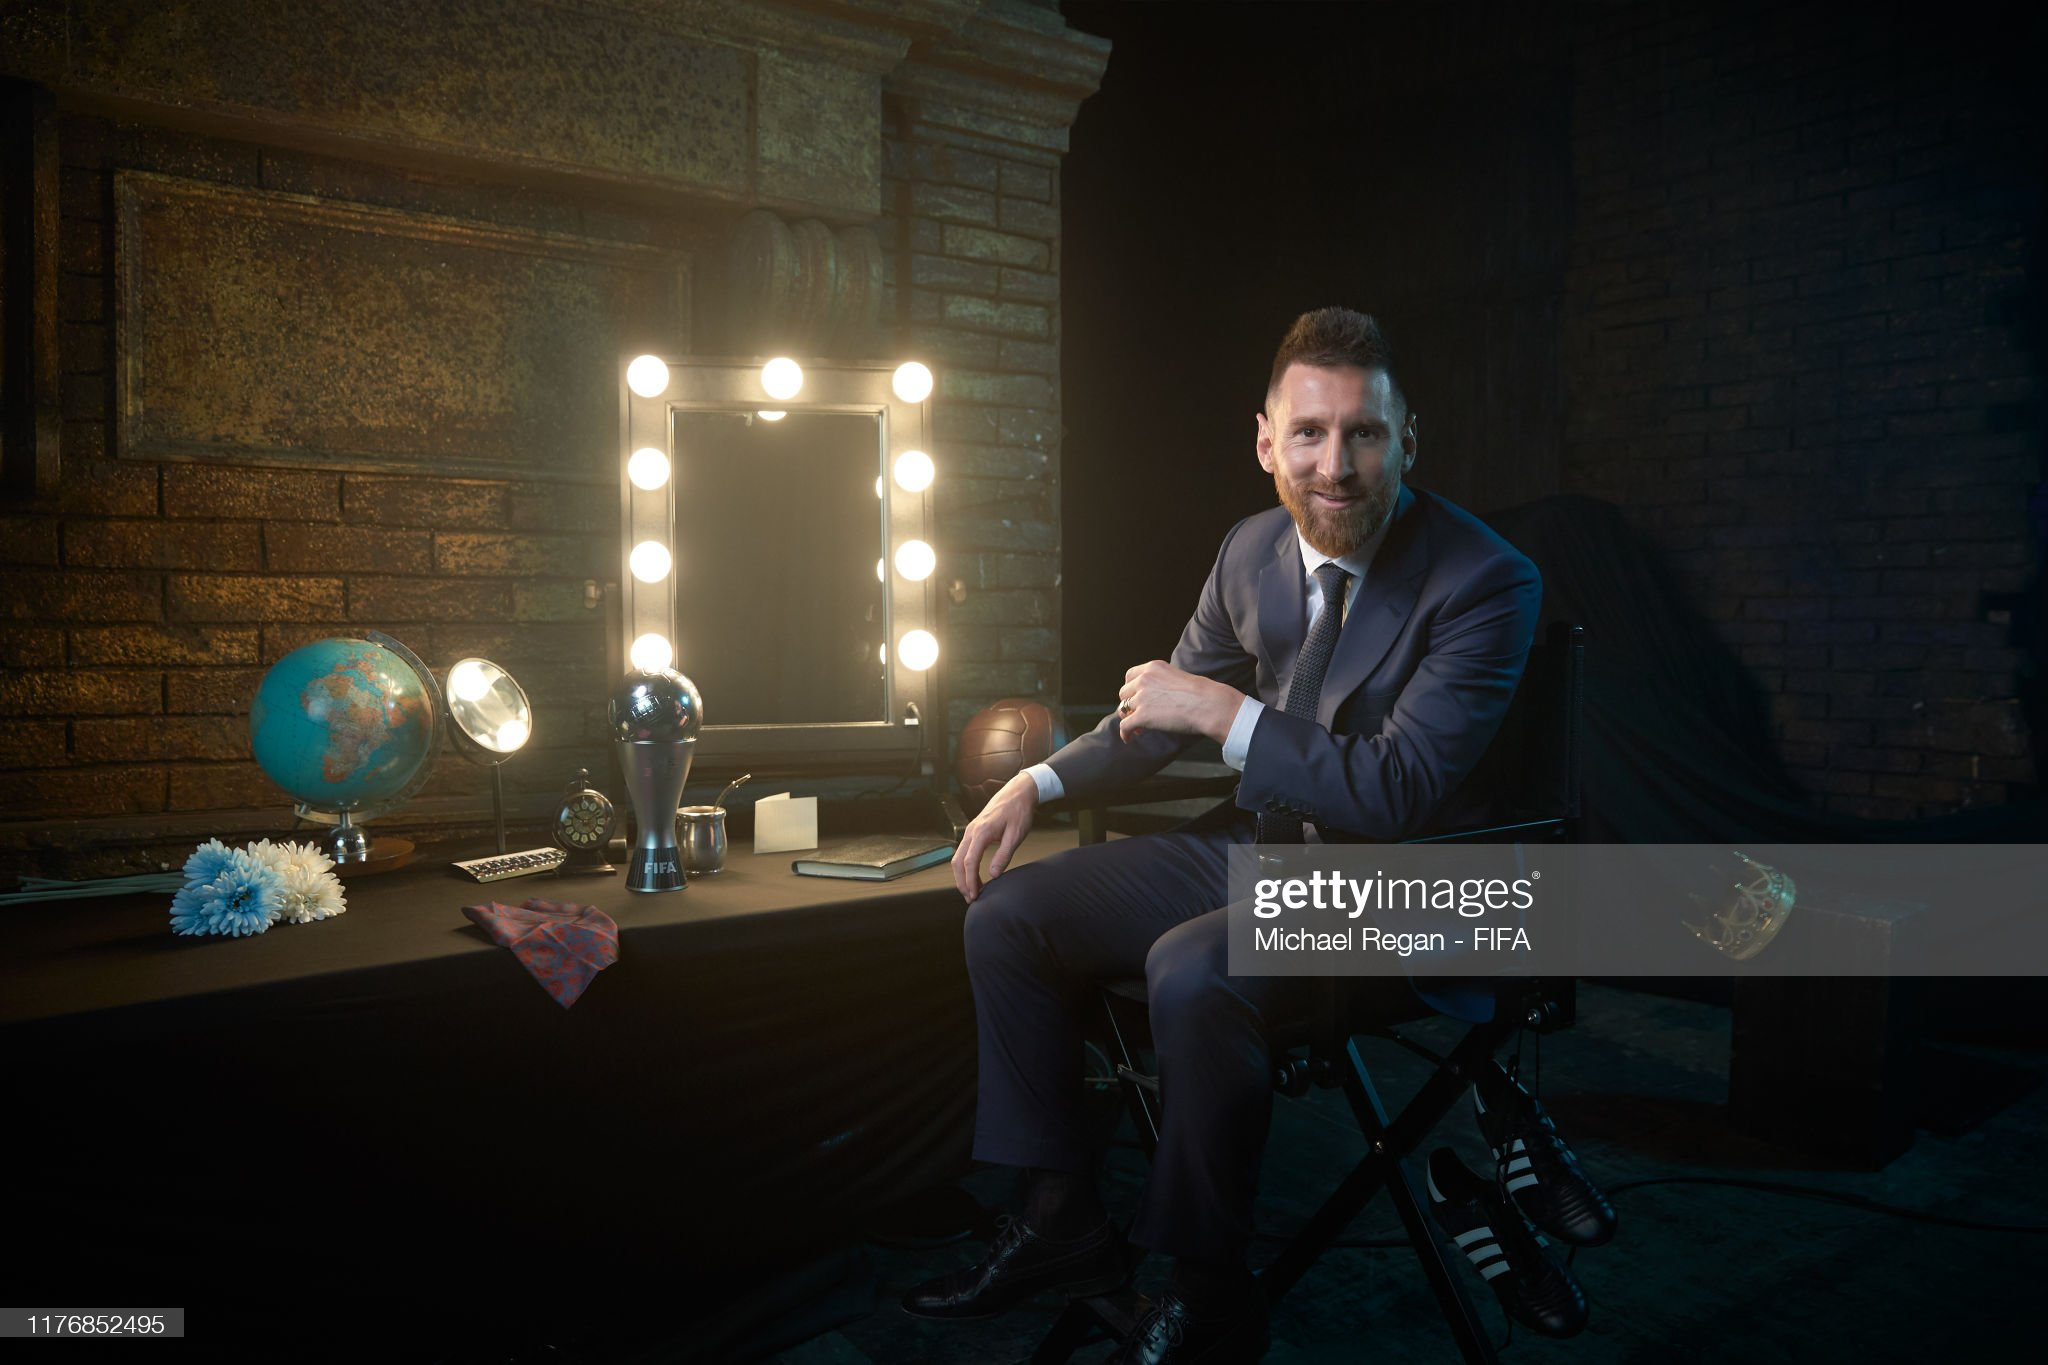 The Best FIFA Football Awards 2019 The-best-fifa-mens-player-award-winner-lionel-messi-of-fc-barcelona-picture-id1176852495?s=2048x2048